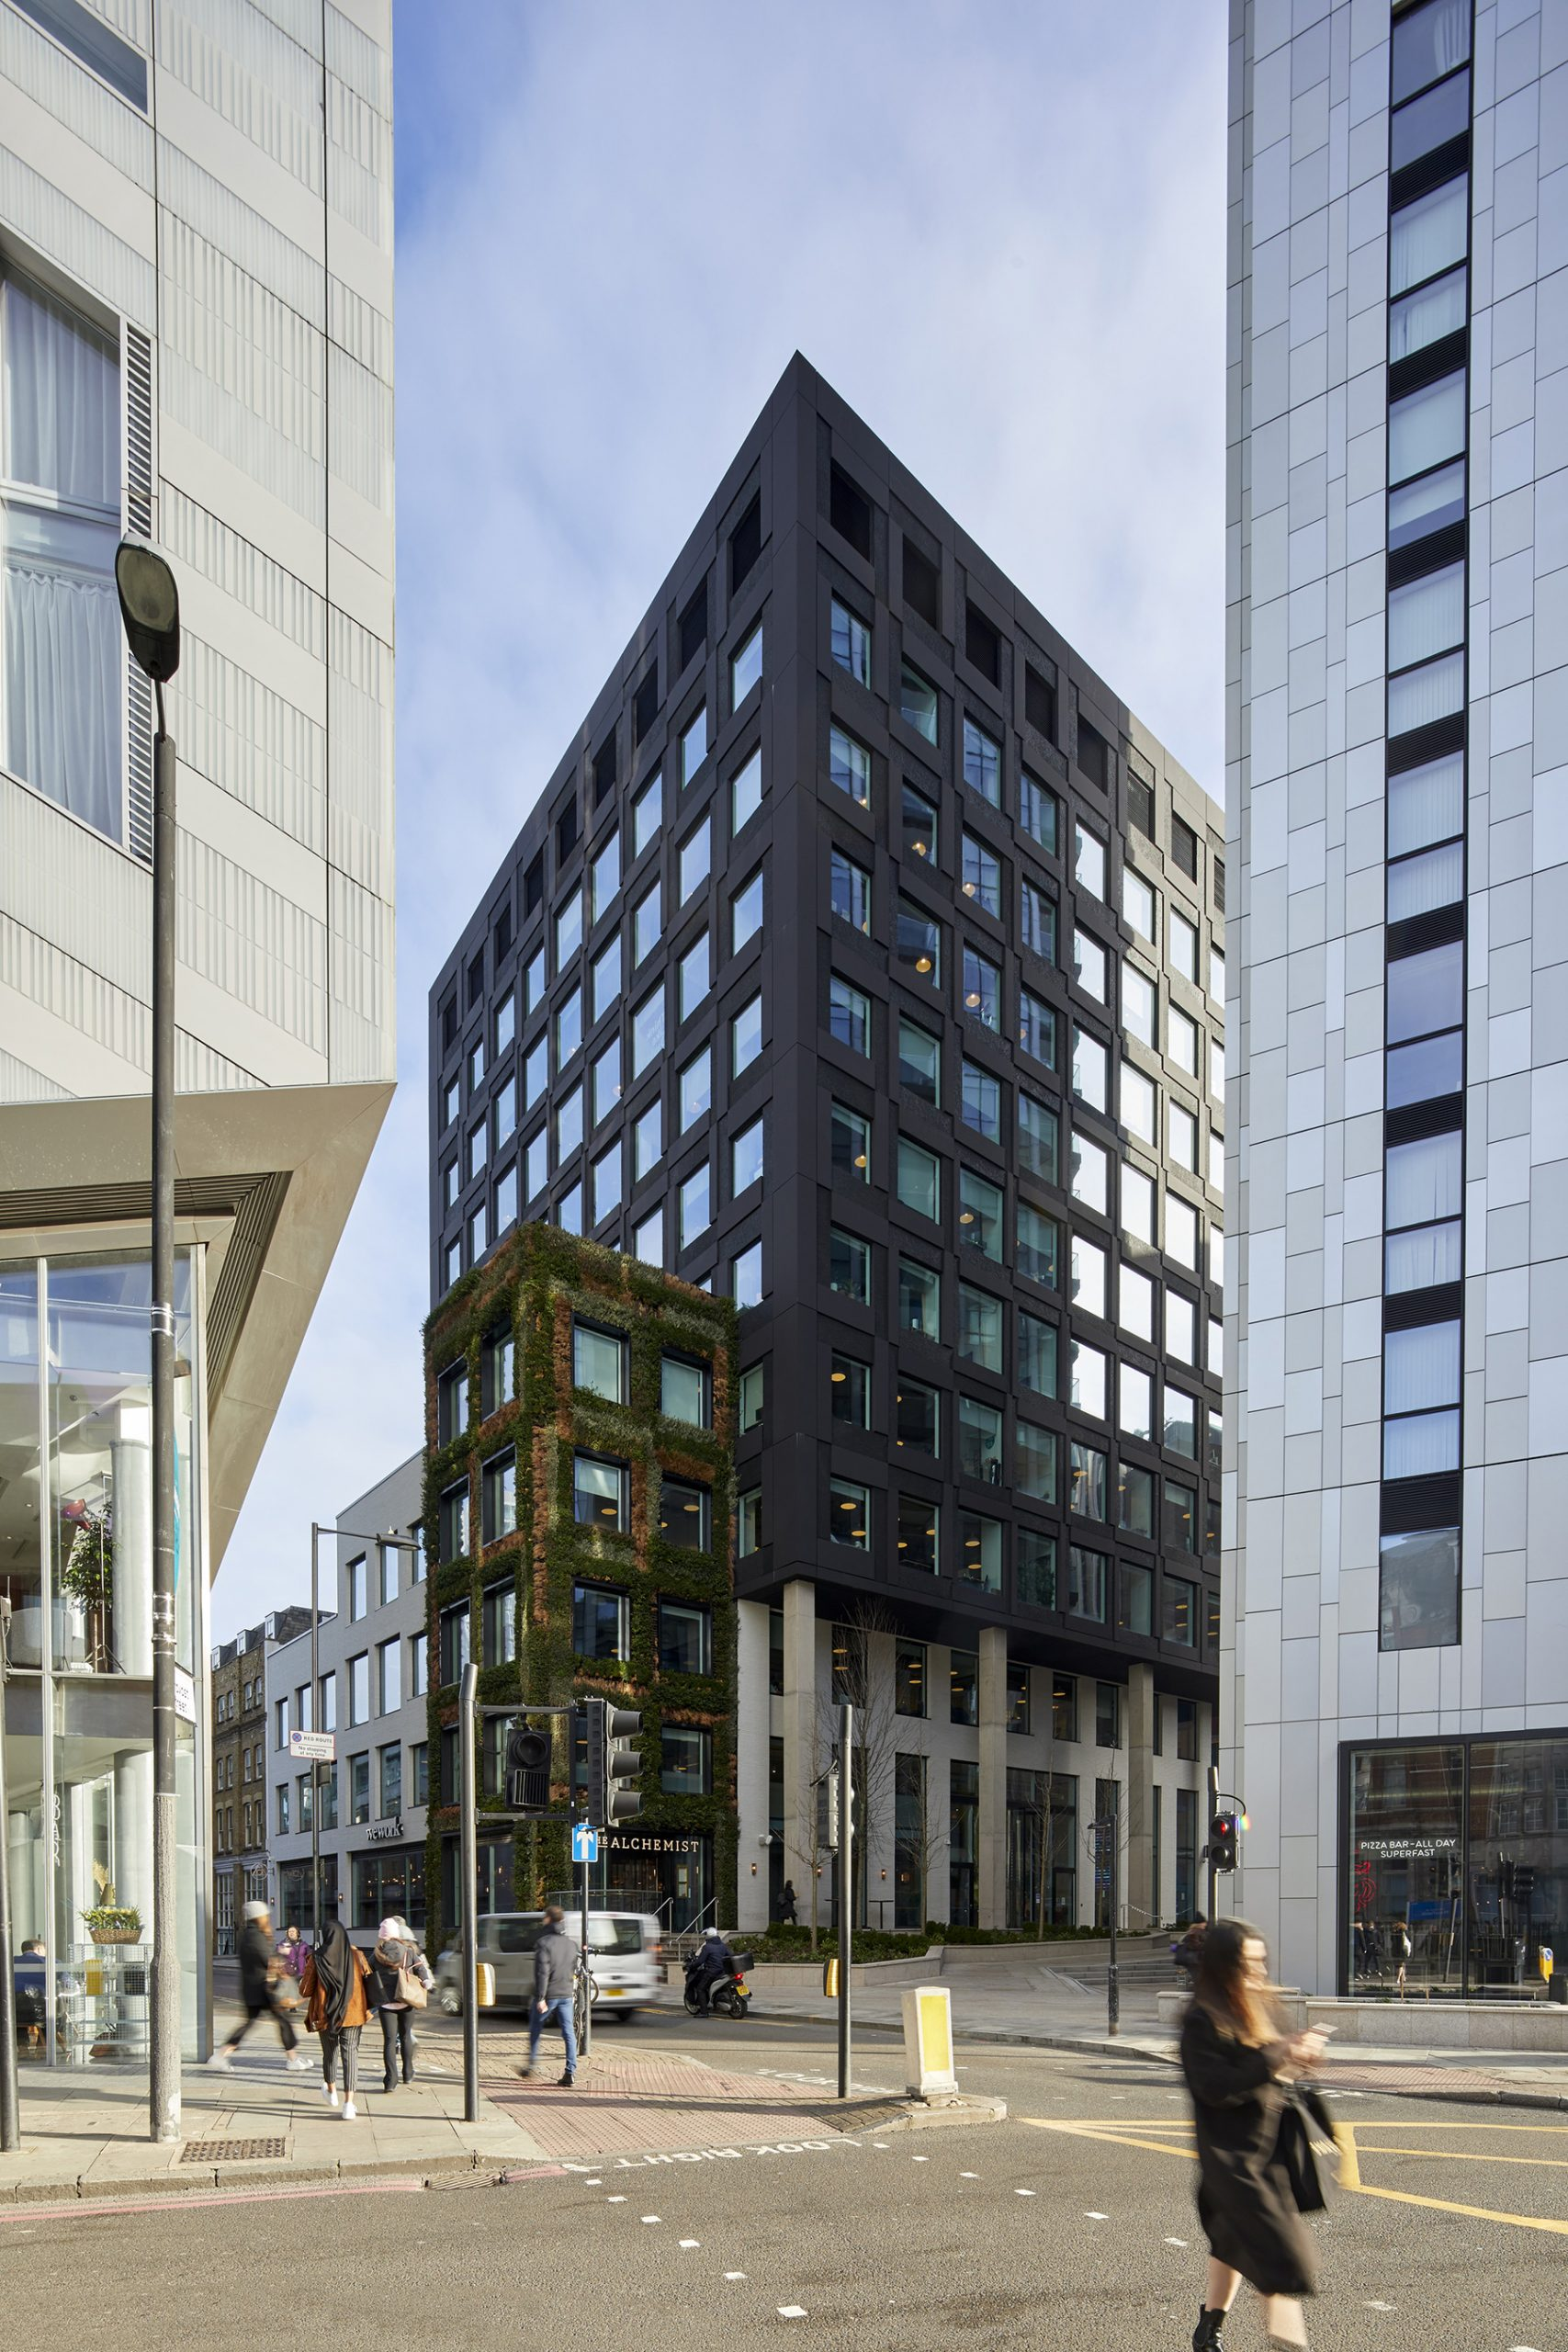 Bespoke curtain walling by Kawneer helps ground a landmark office building